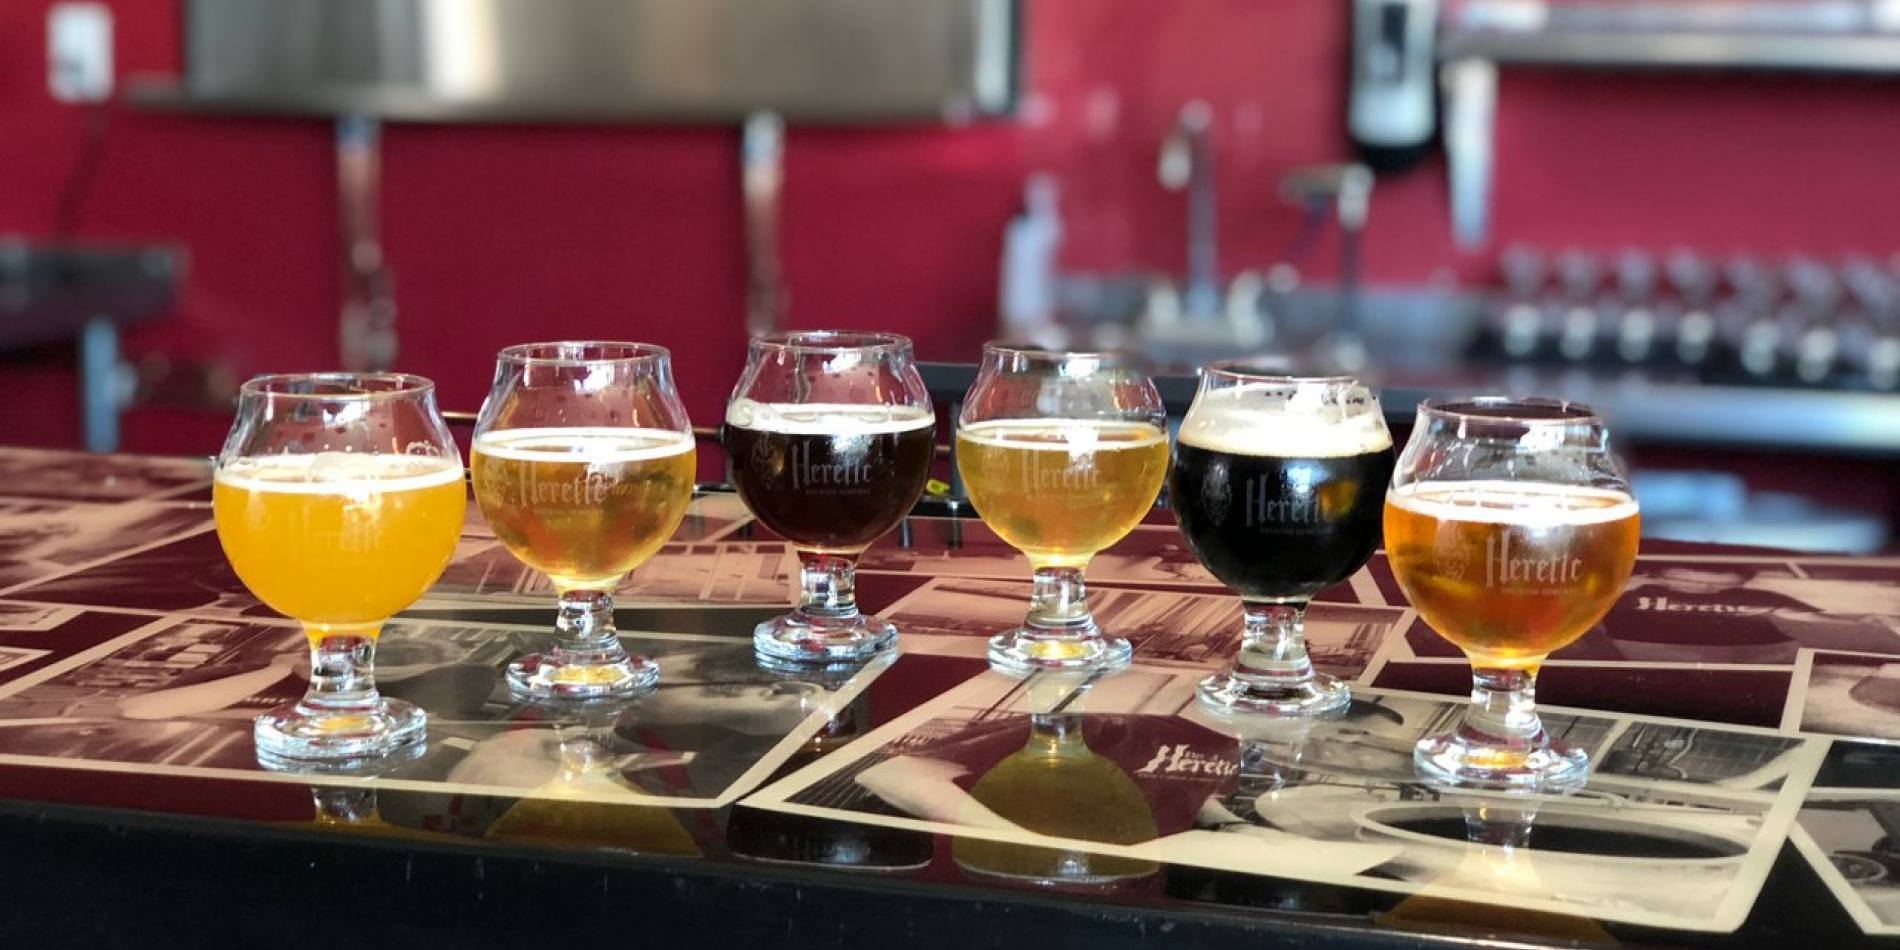 Heretic Brewing's taproom features 20 beers on tap and a full menu of delicious food